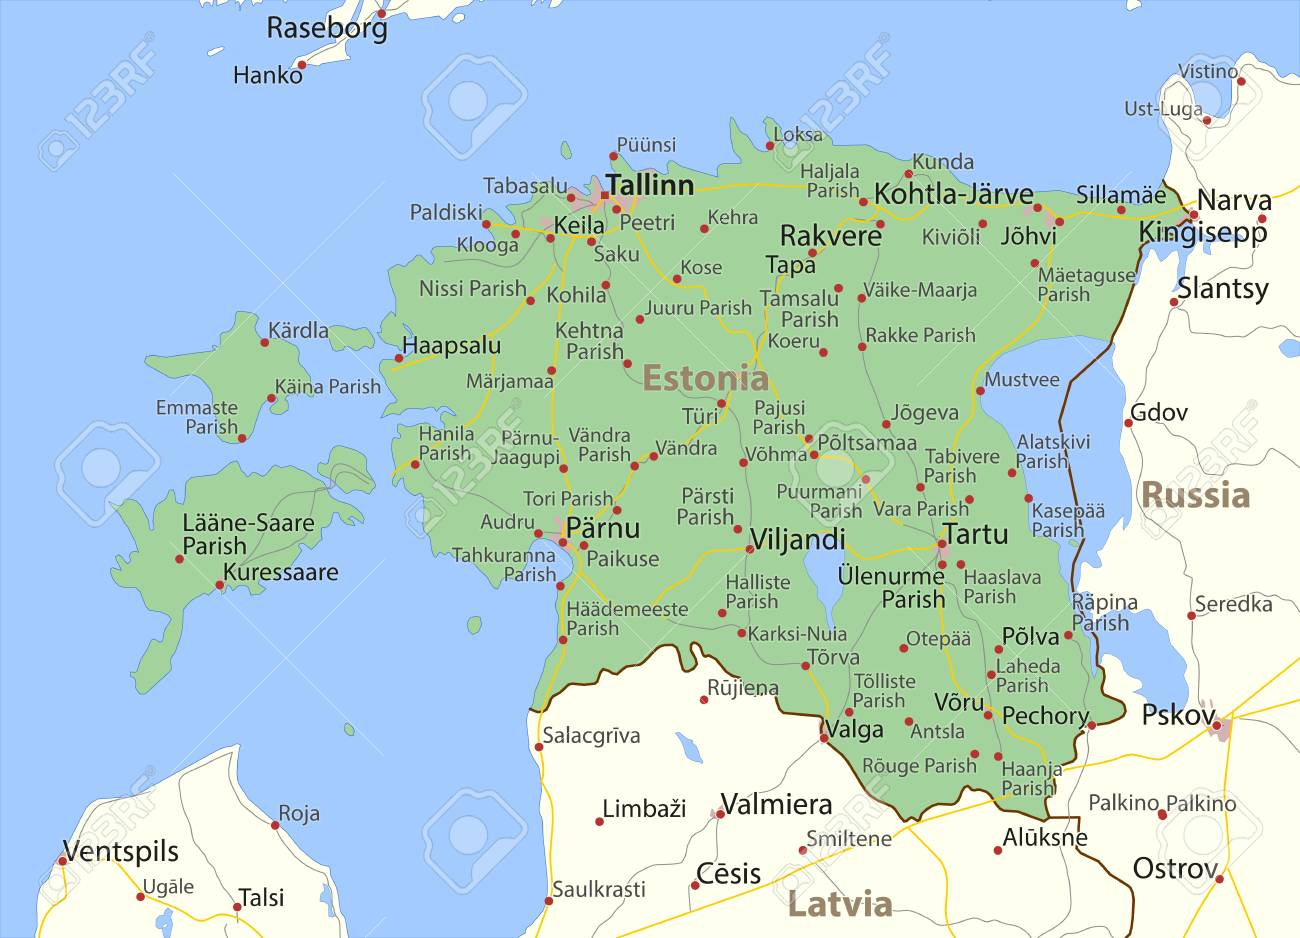 Map of Estonia. Shows country borders, urban areas, place names..